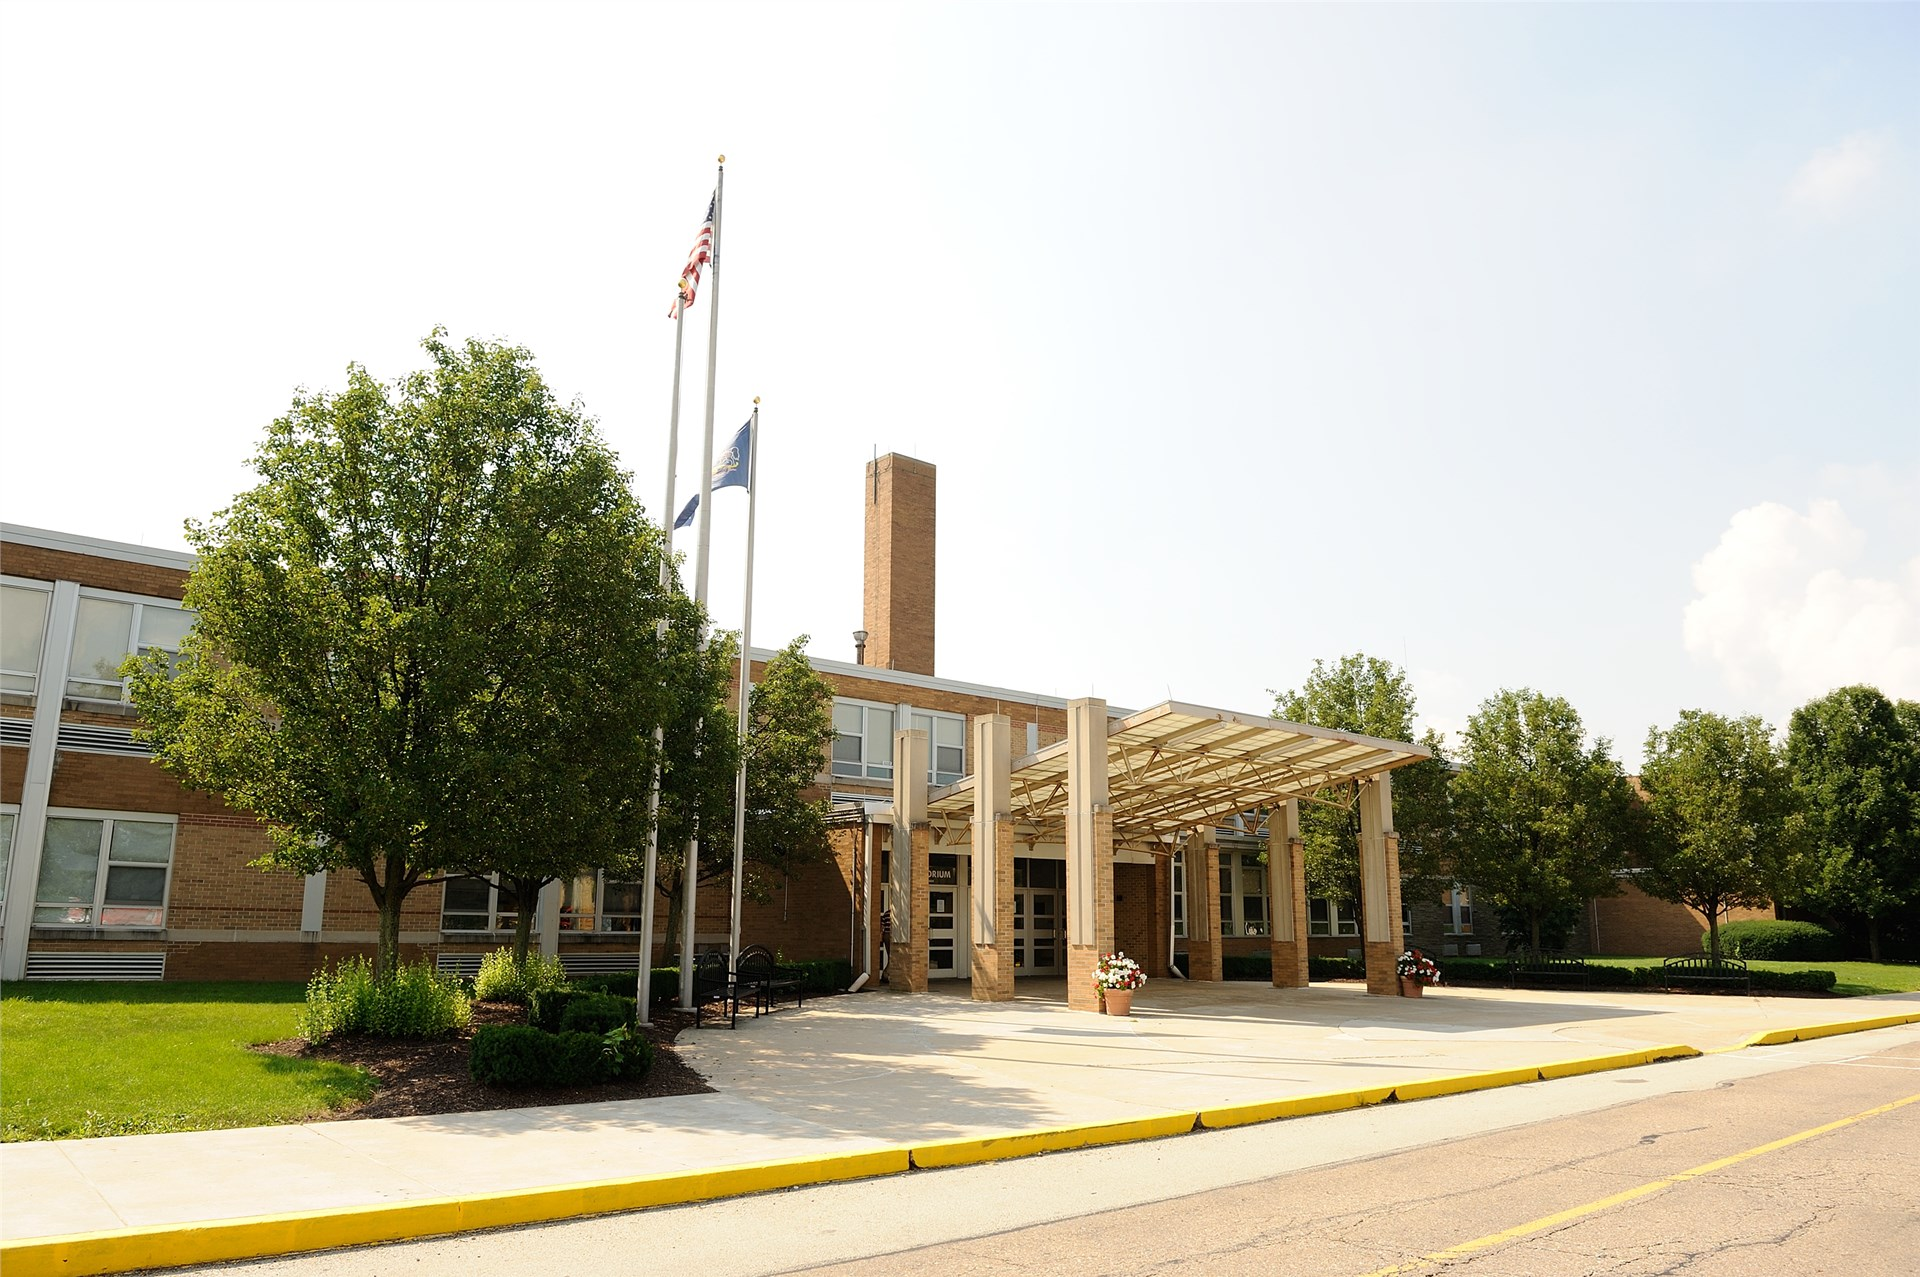 North Hills Middle School Building Exterior View